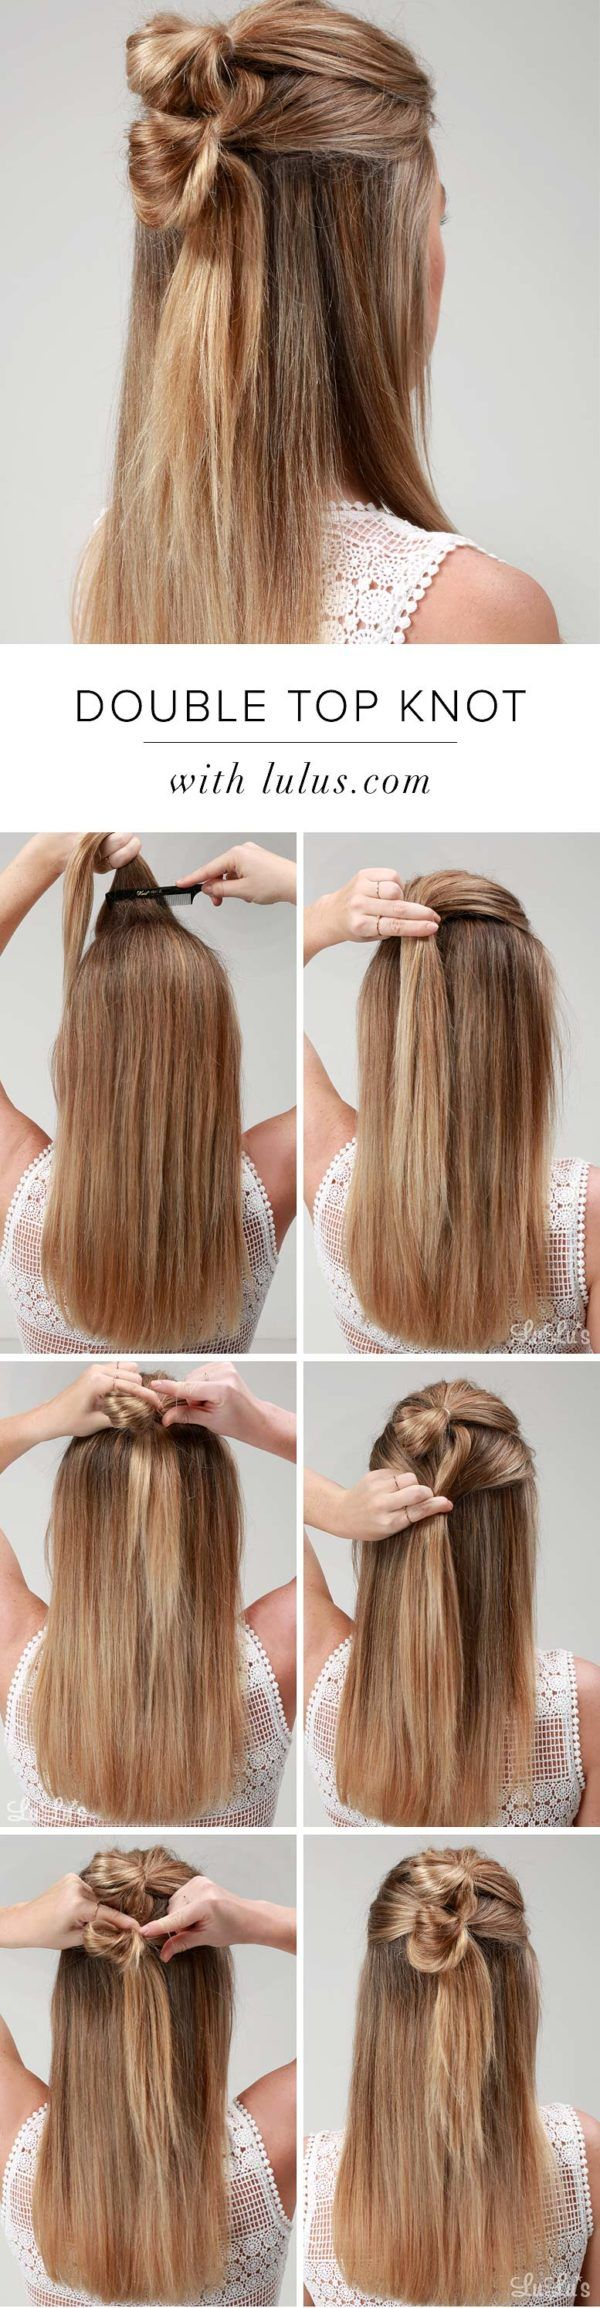 easy step by step hairstyle tutorials you can do in less